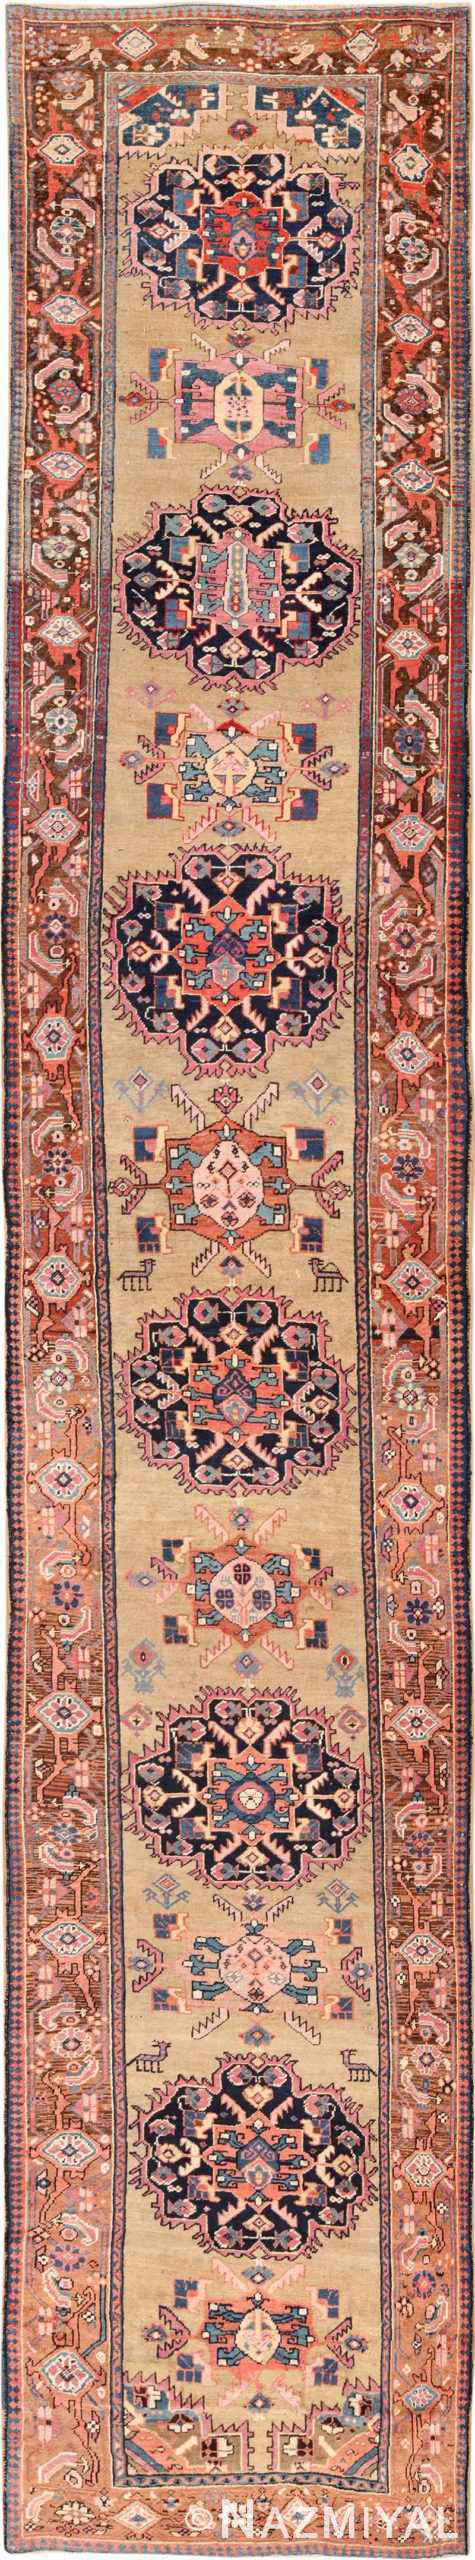 antique karabagh caucasian runner rug 49639 Nazmiyal